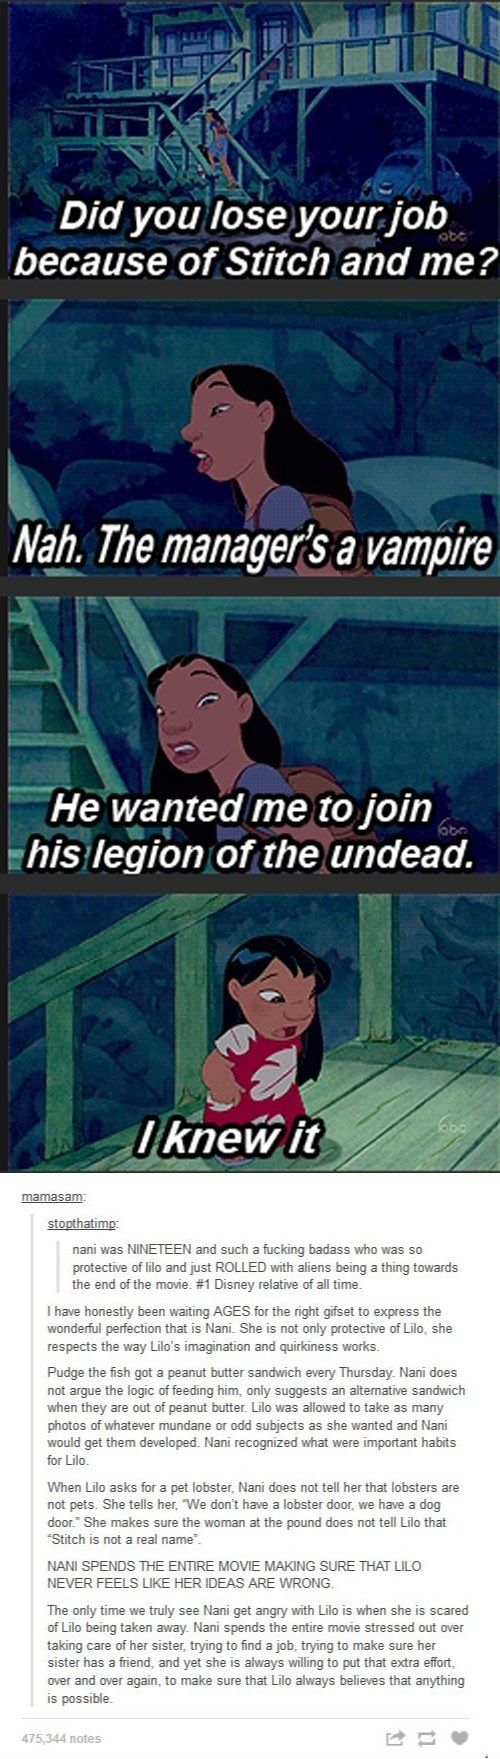 And this is why Nani is one of the best sisters on film. Not just Disney but in film or TV in general. And I love her for being so wonderfully loving and strong!